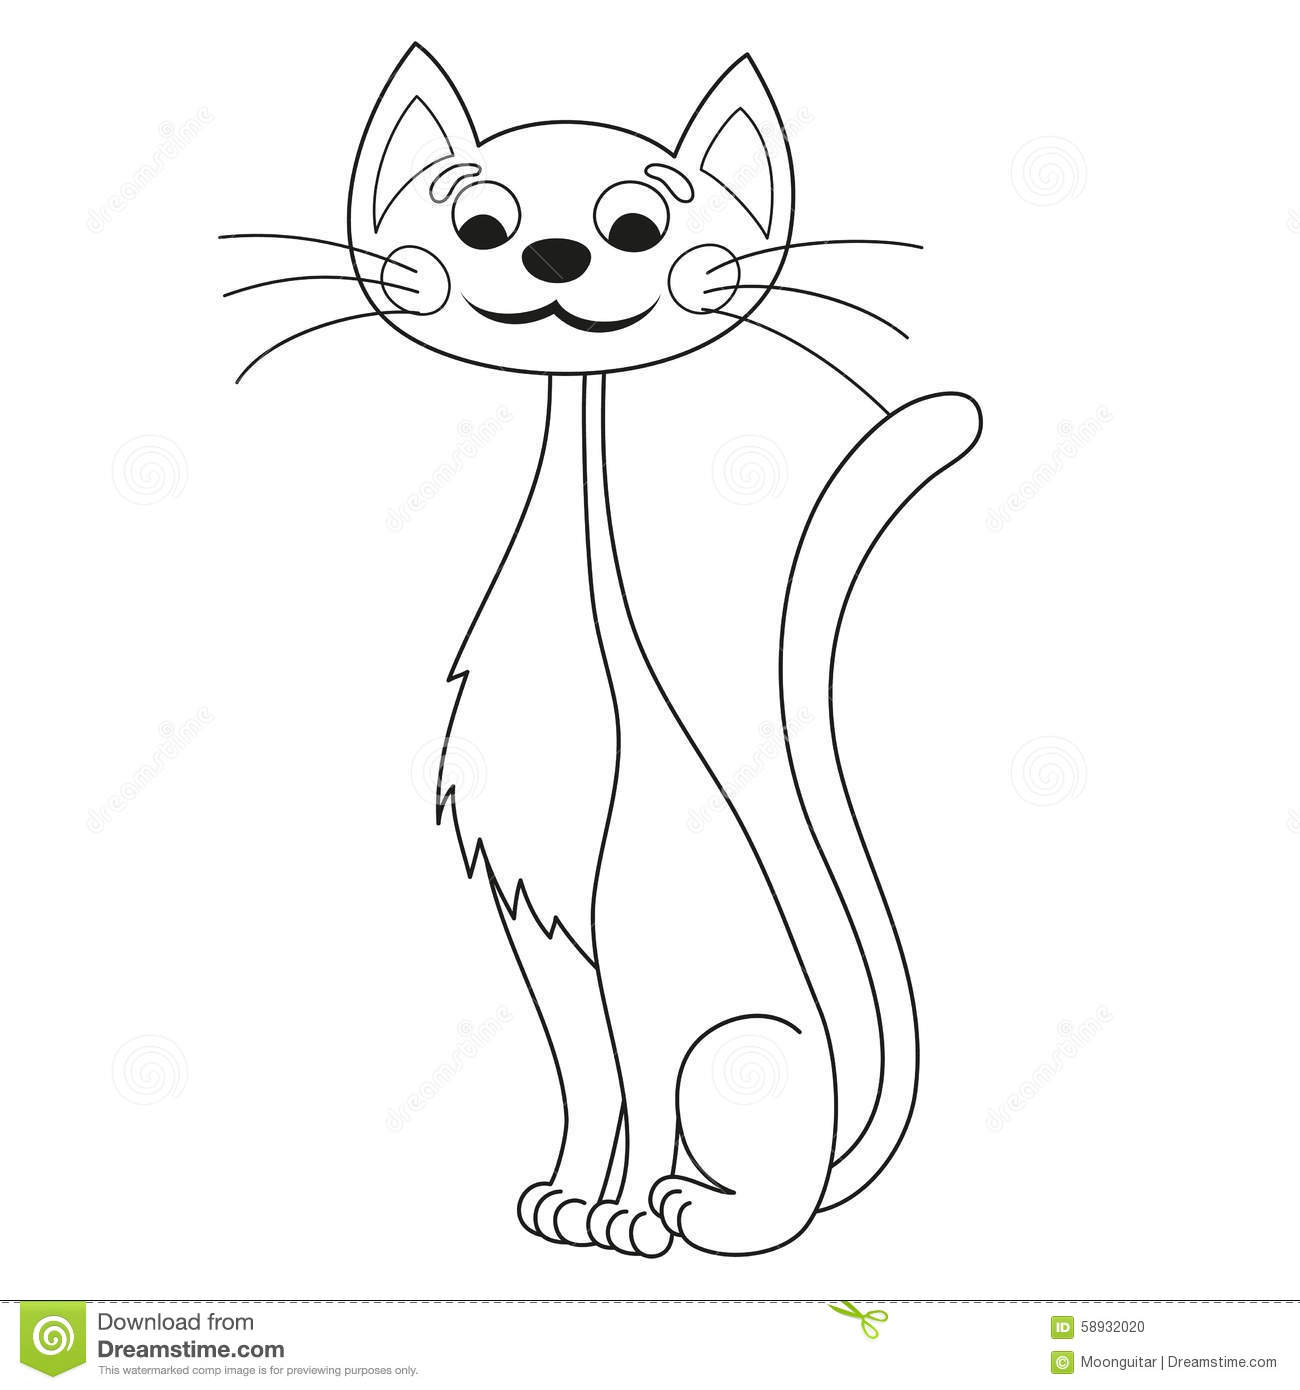 a freaky cat